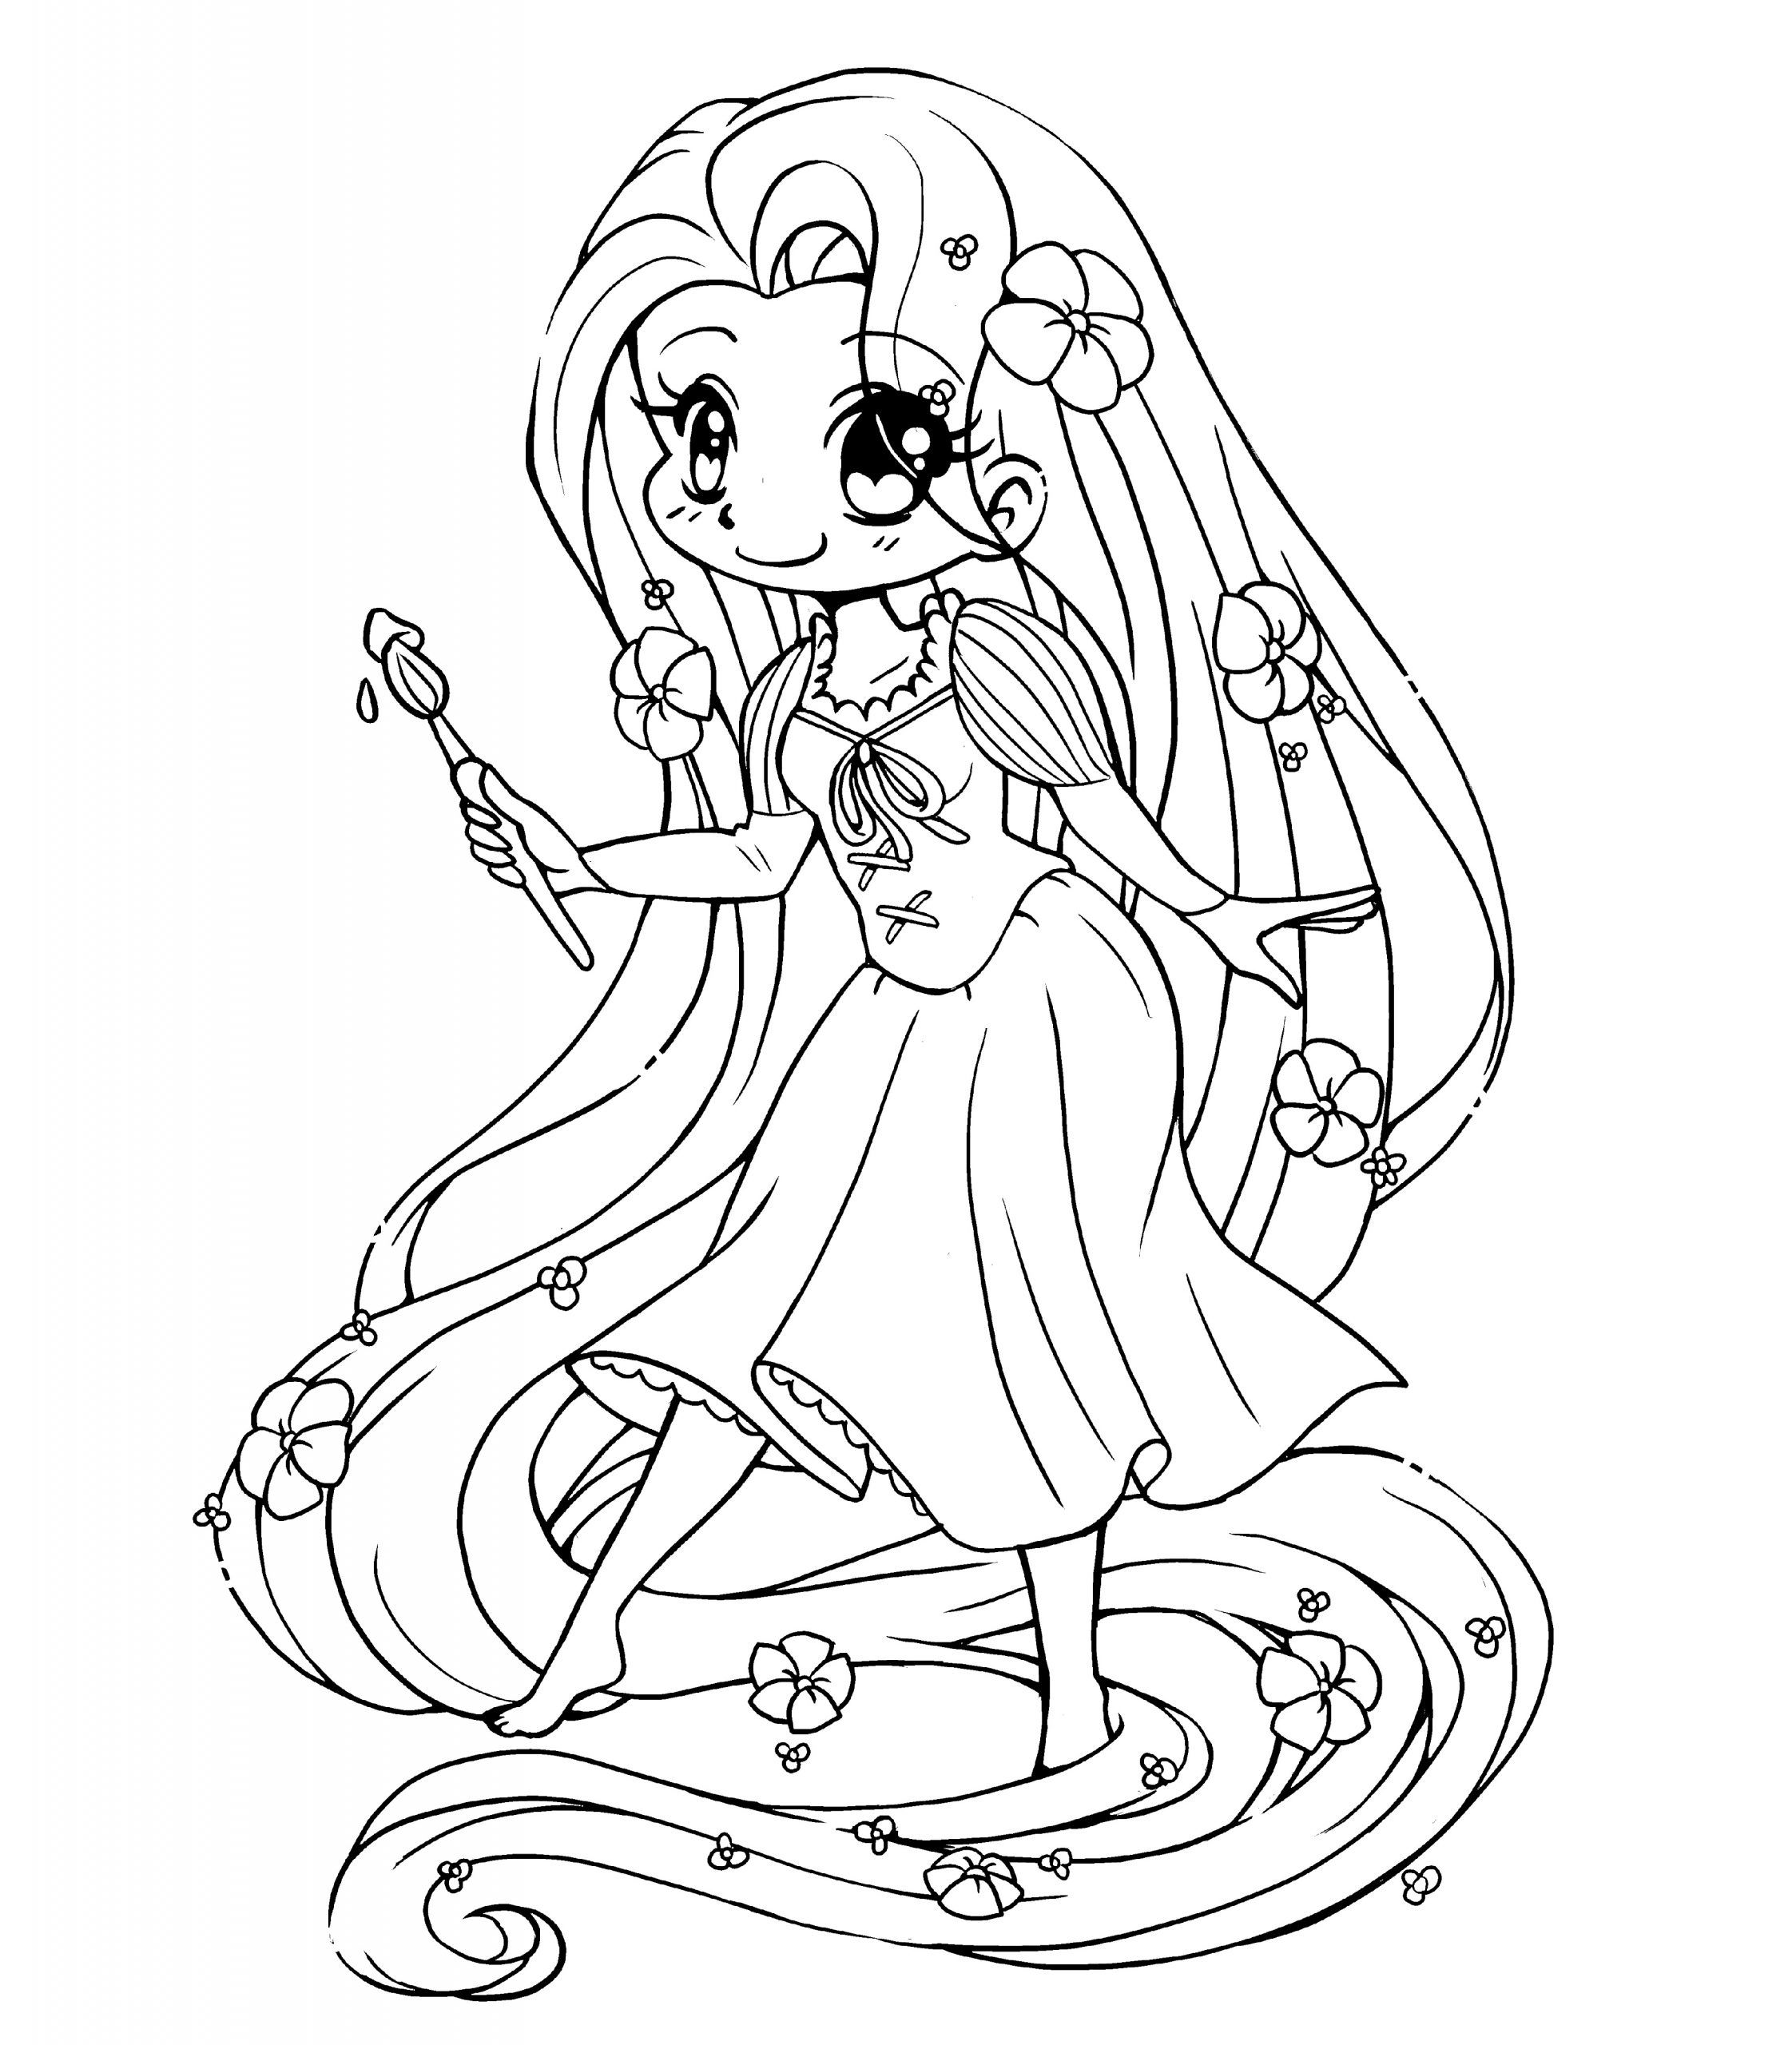 Tangled Rapunzel Color Pages Printable In 2020 Chibi Coloring Pages Disney Princess Coloring Pages Princess Coloring Pages